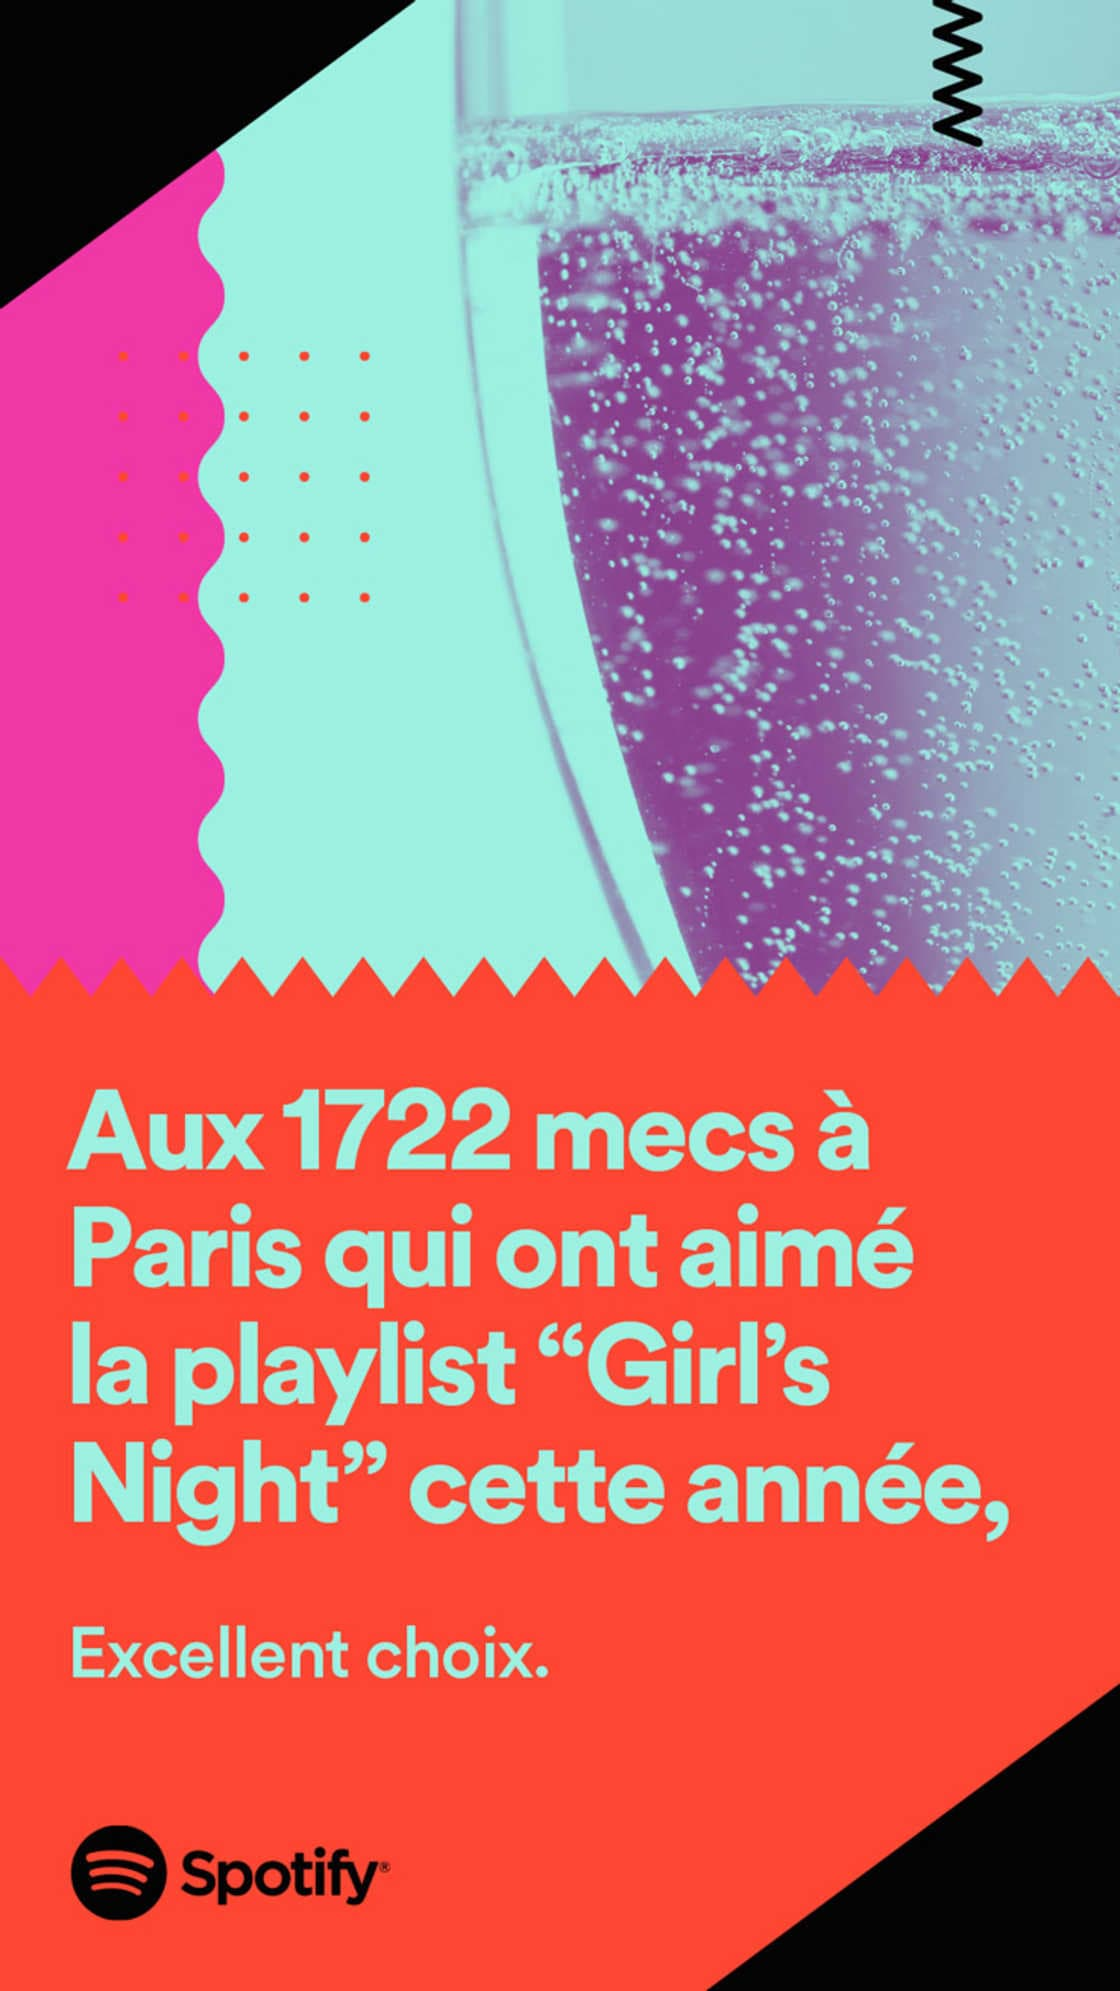 aux 1722 mecs a paris qui ont aime la playlist girls night